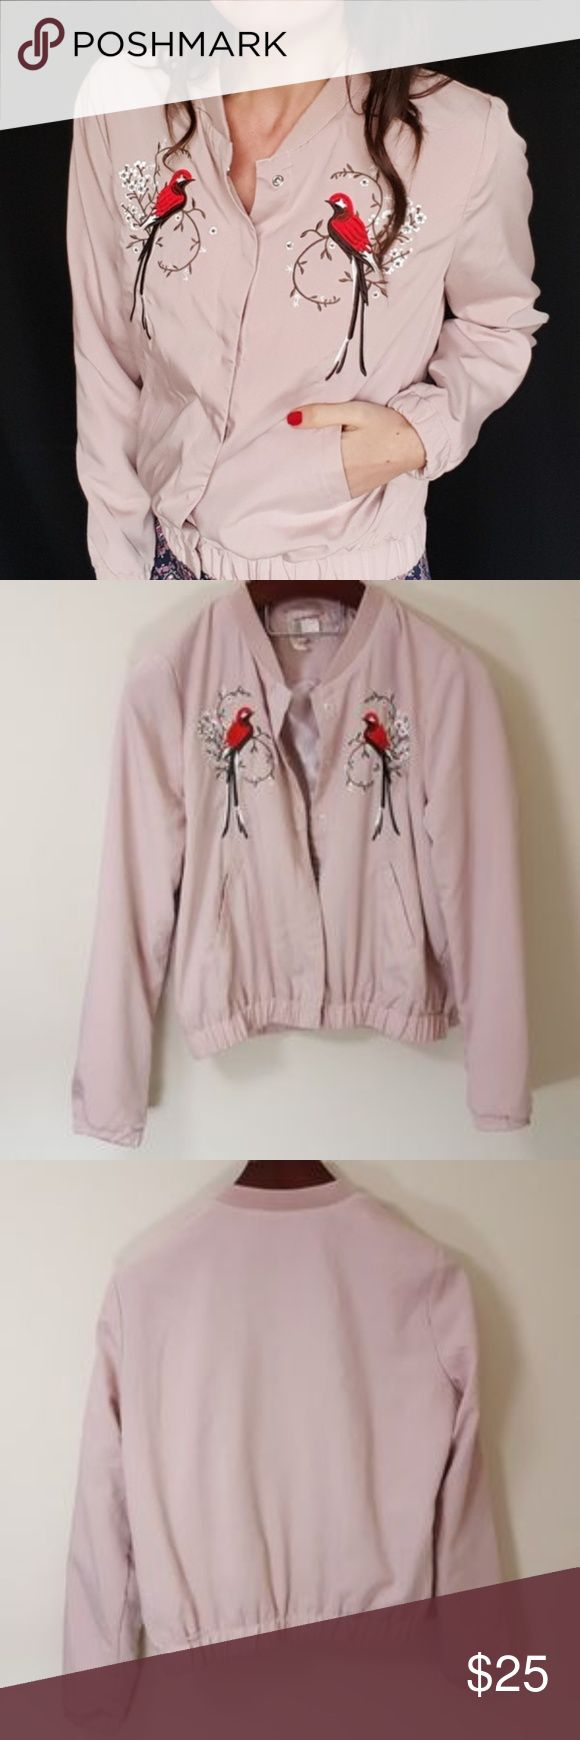 Bird embroidered bomber jacket -B5 In good condition! Adorable light pink bomber jacket with embroidered birds! From H&M. Used item:pictures show any signs of wear or use. Inspected for quality and wear! Bundle up! Offers always welcome:)  Shop my husband's closet!: @kirchingeraaron H&M Jackets & Coats